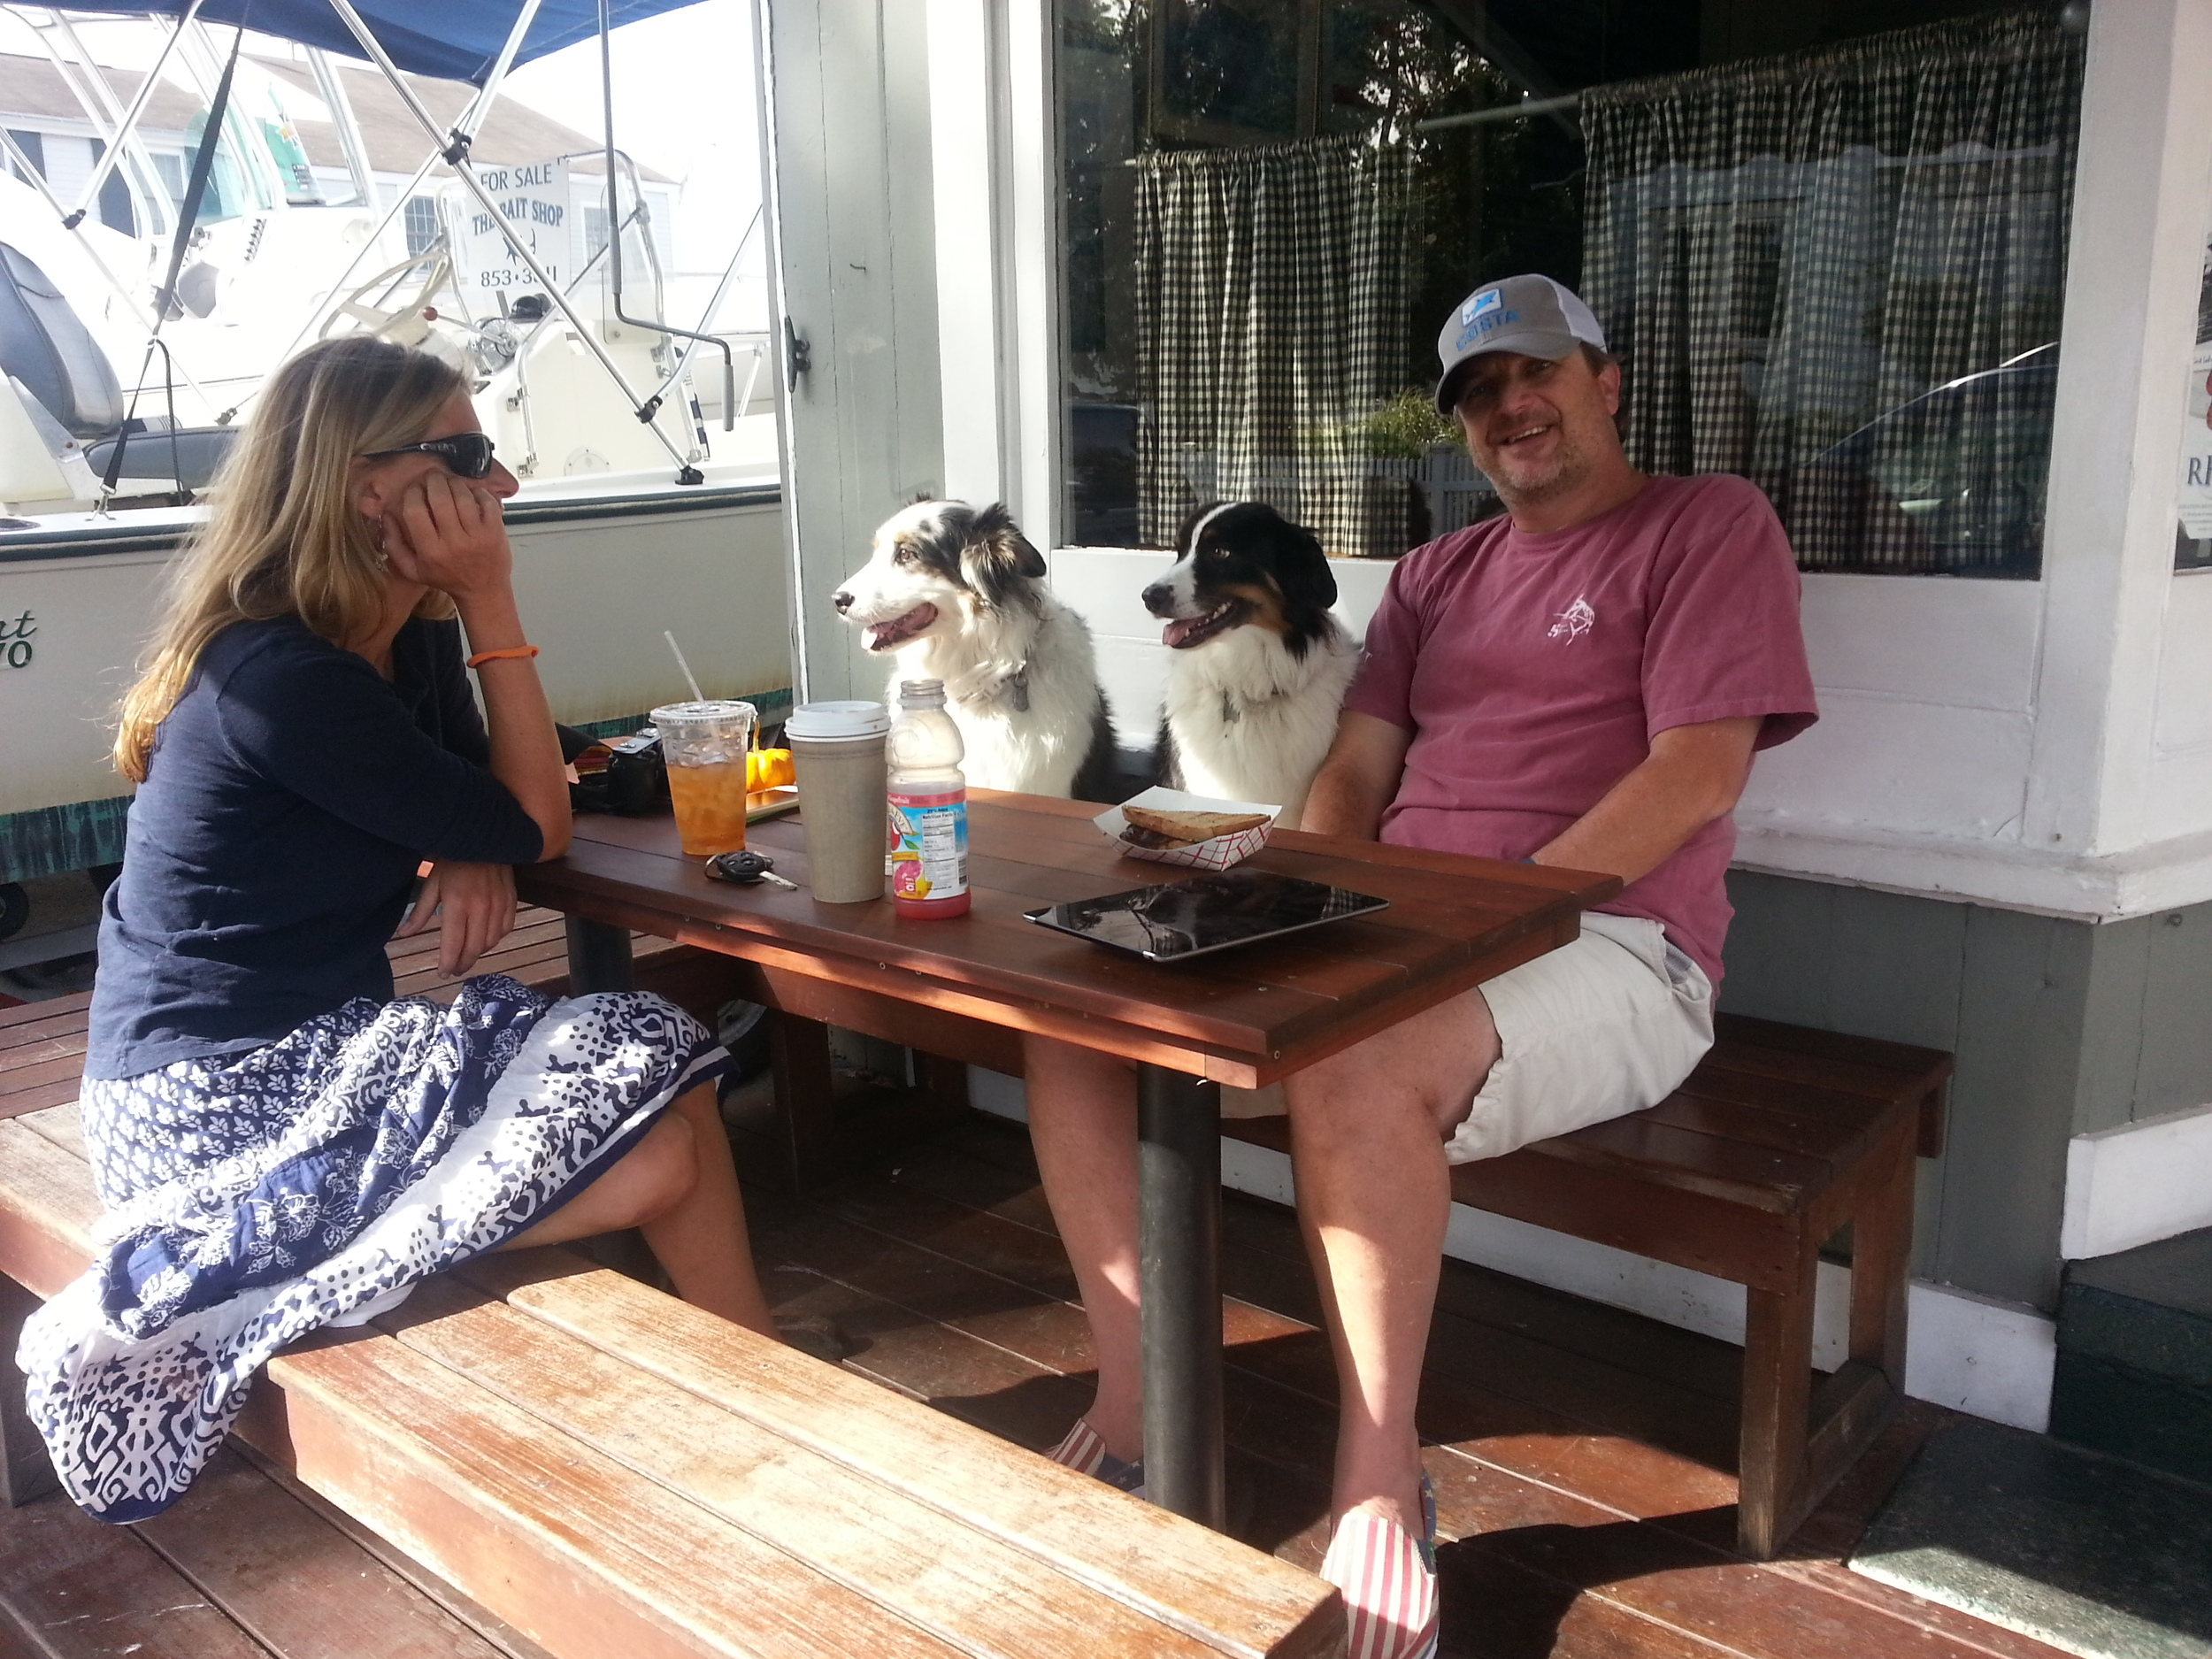 Where else can you have breakfast with your pups?